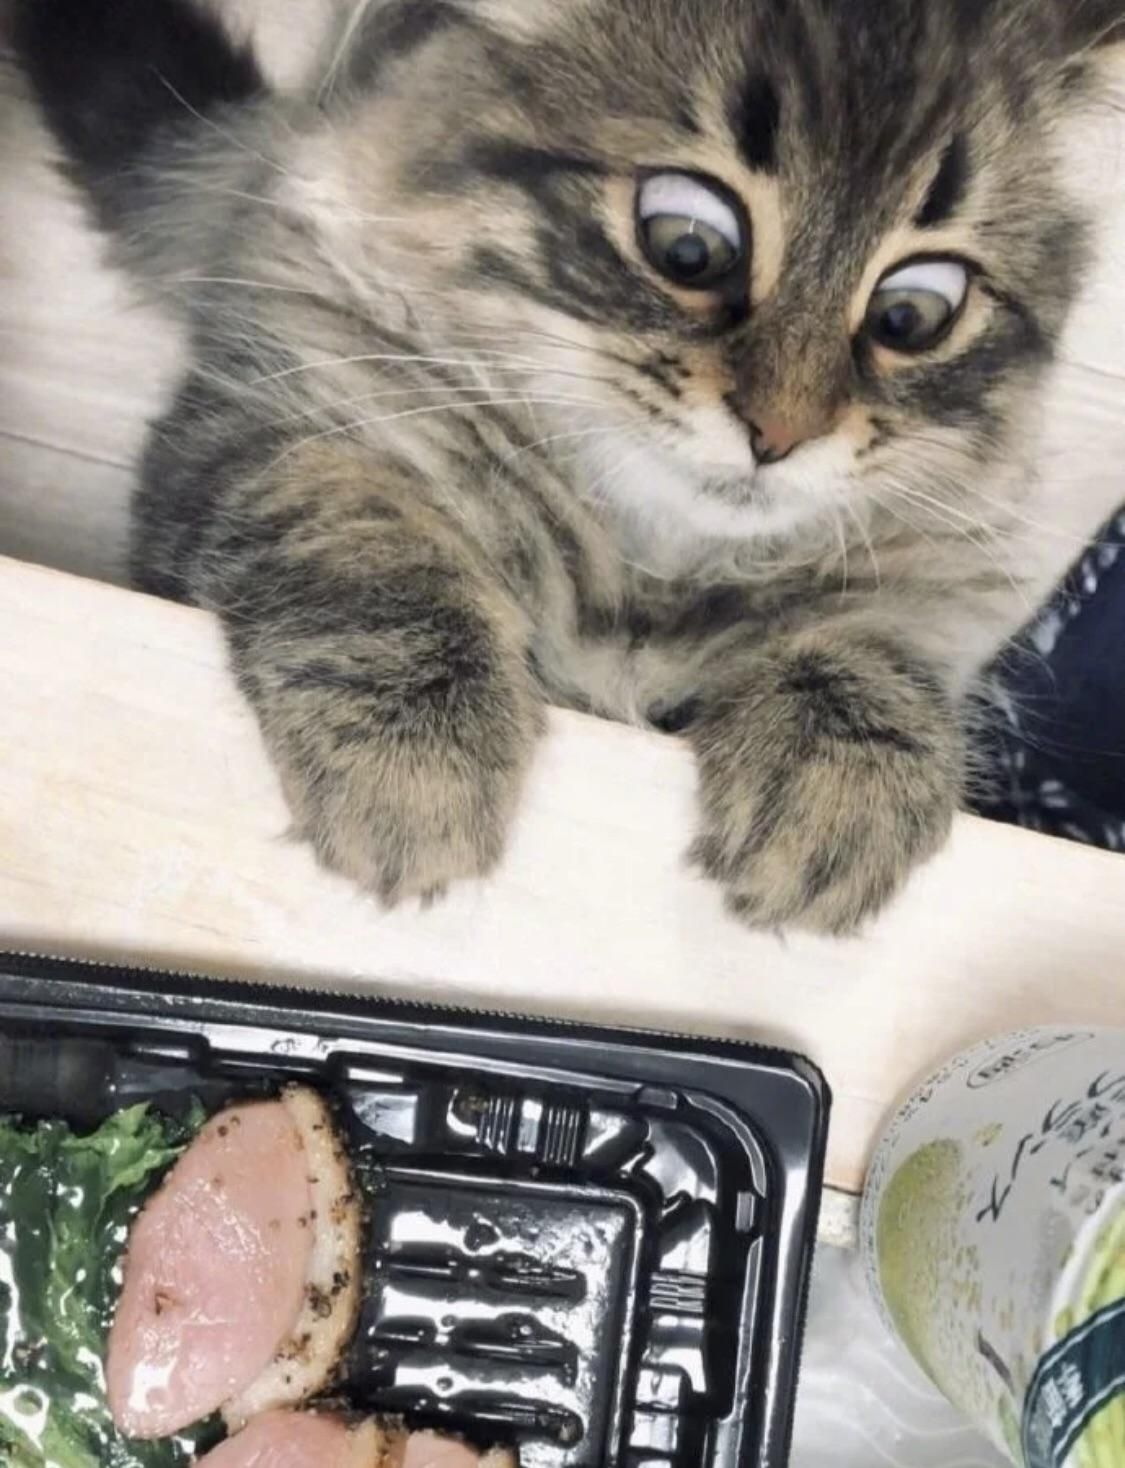 The way she looks at food!